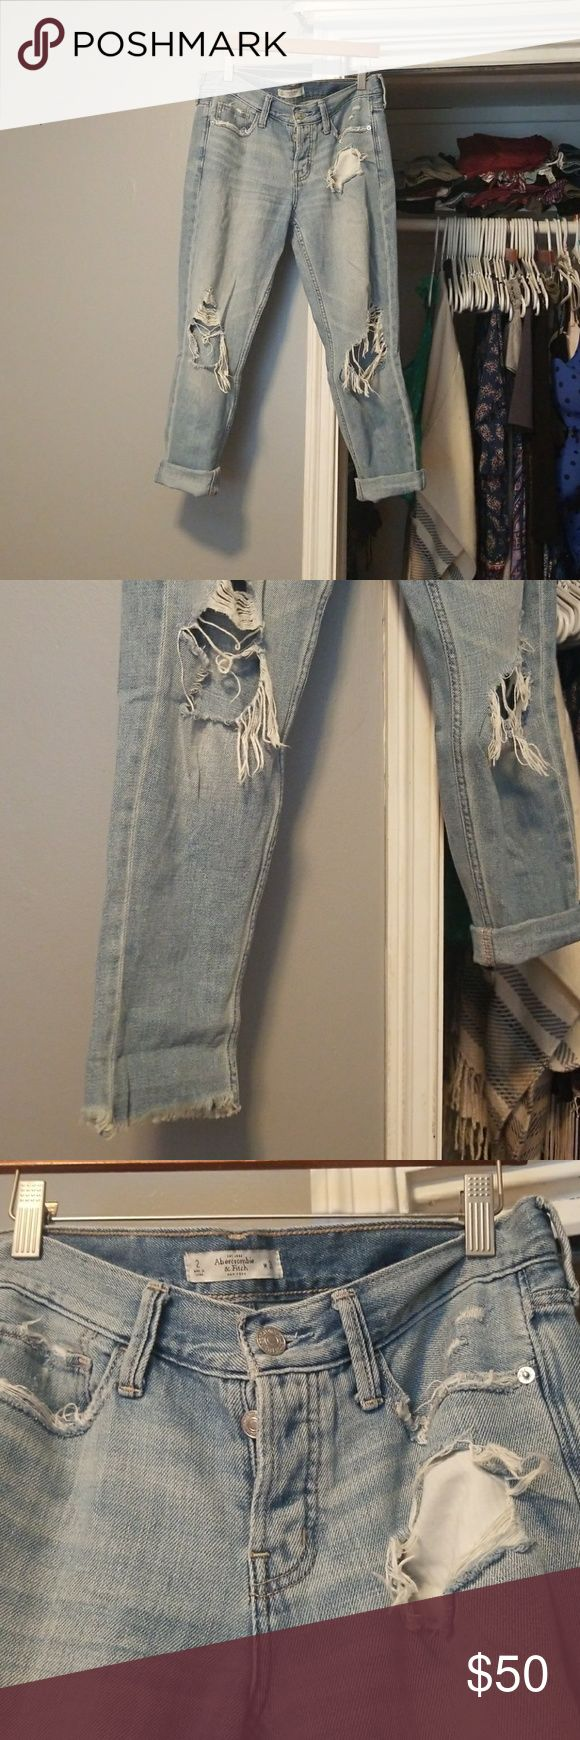 Boyfriend fit jeans Blow out knees. Can be rolled or unrolled to desire. Button up fly(no zipper). Gently used. These were one of my favorite pair of jeans but unfortunately my butt no longer fits them after having my baby:( they deserve a good home! Offers are more than welcome :) Abercrombie & Fitch Jeans Boyfriend